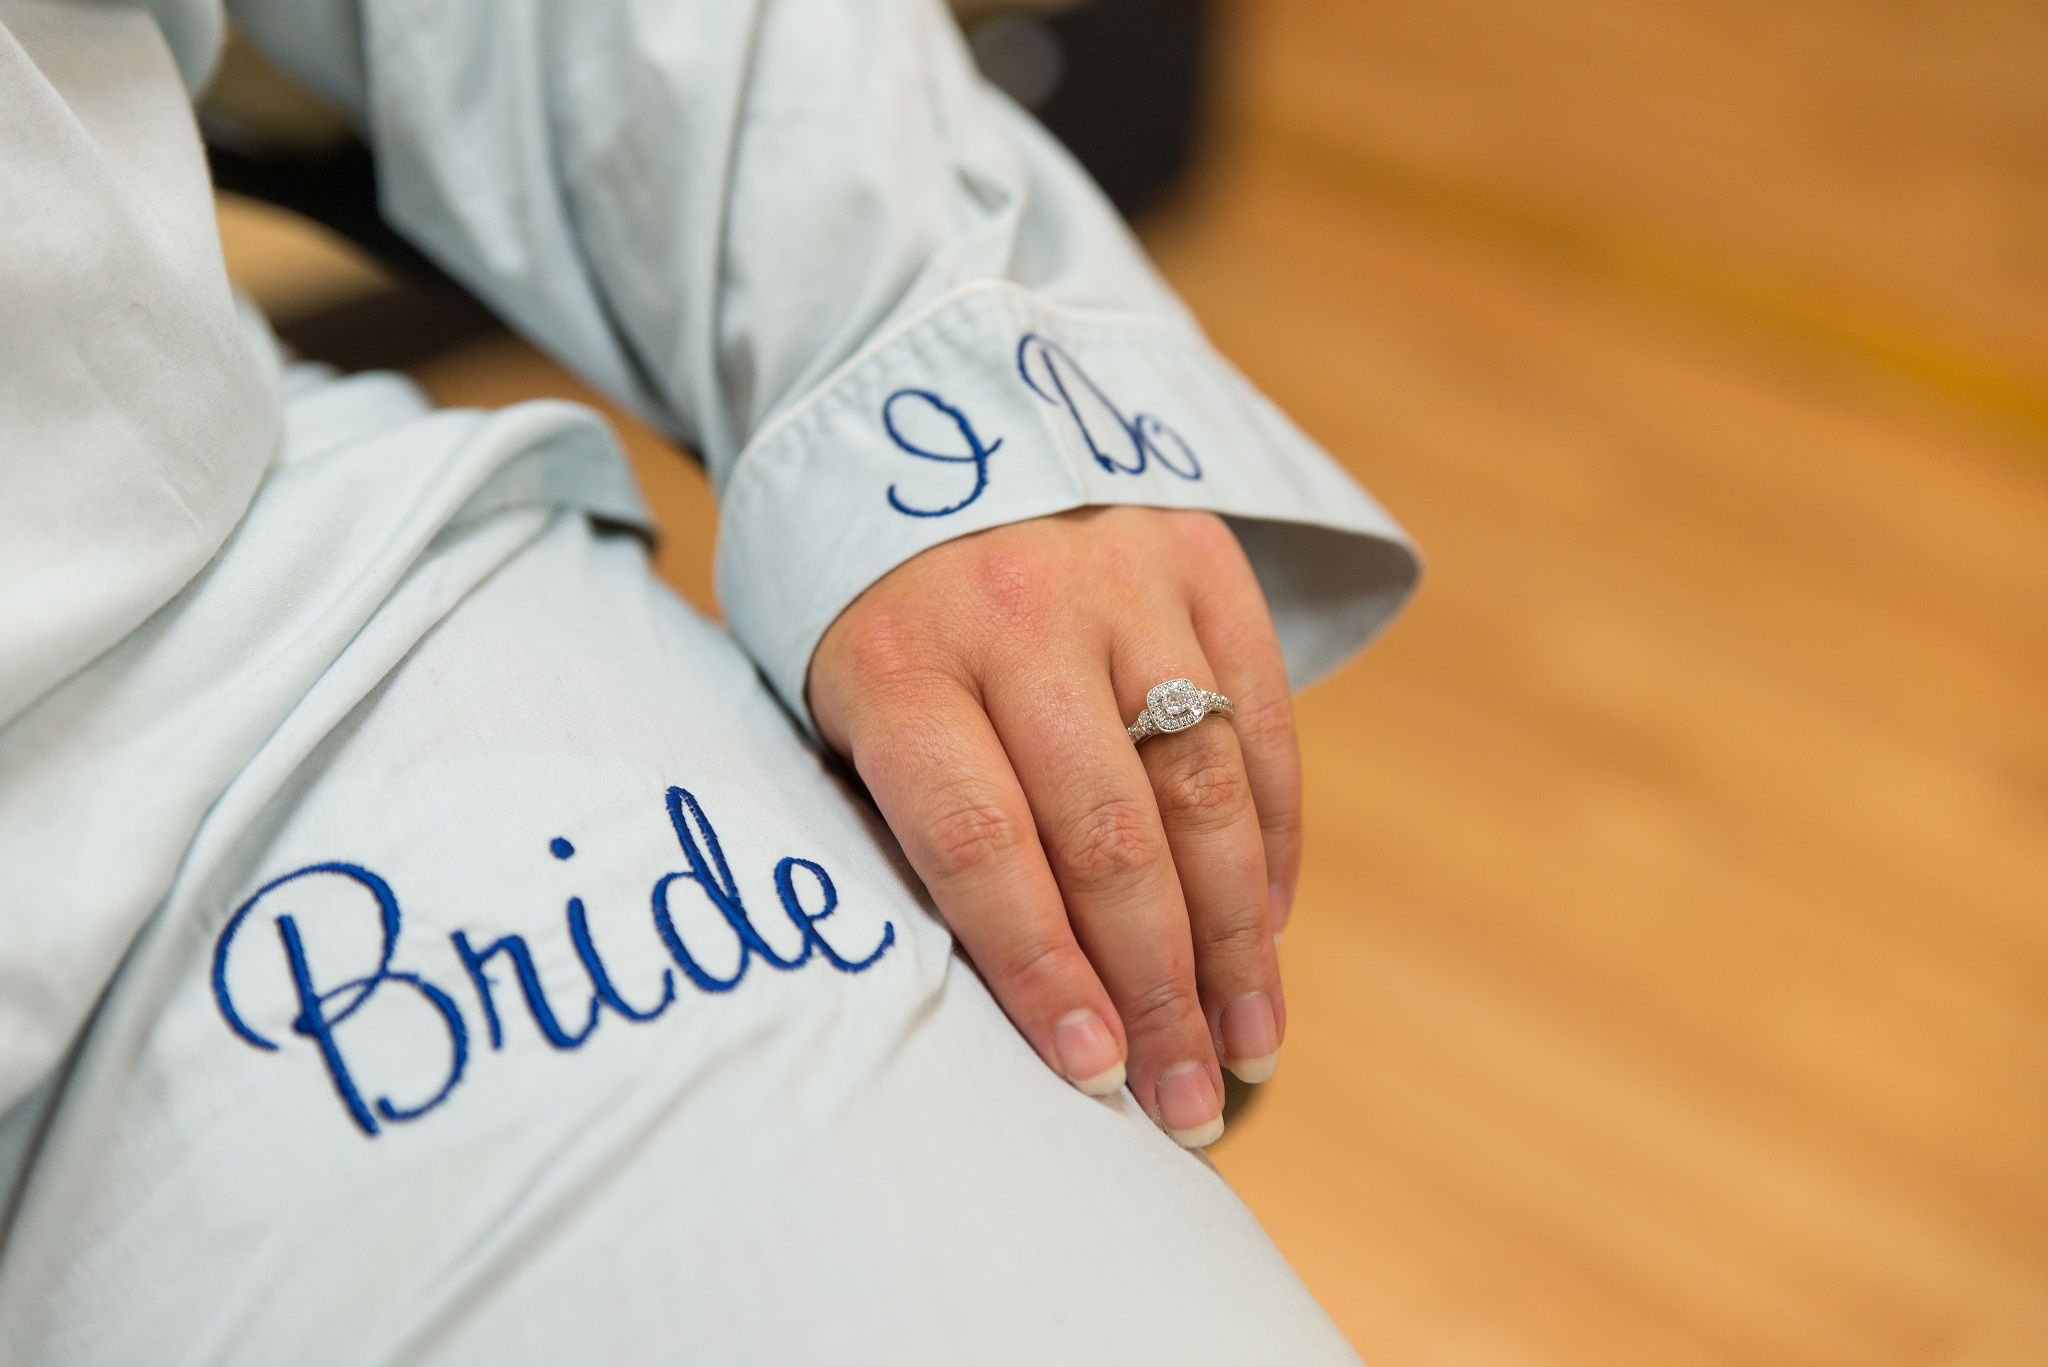 Ring shot while bride is getting ready